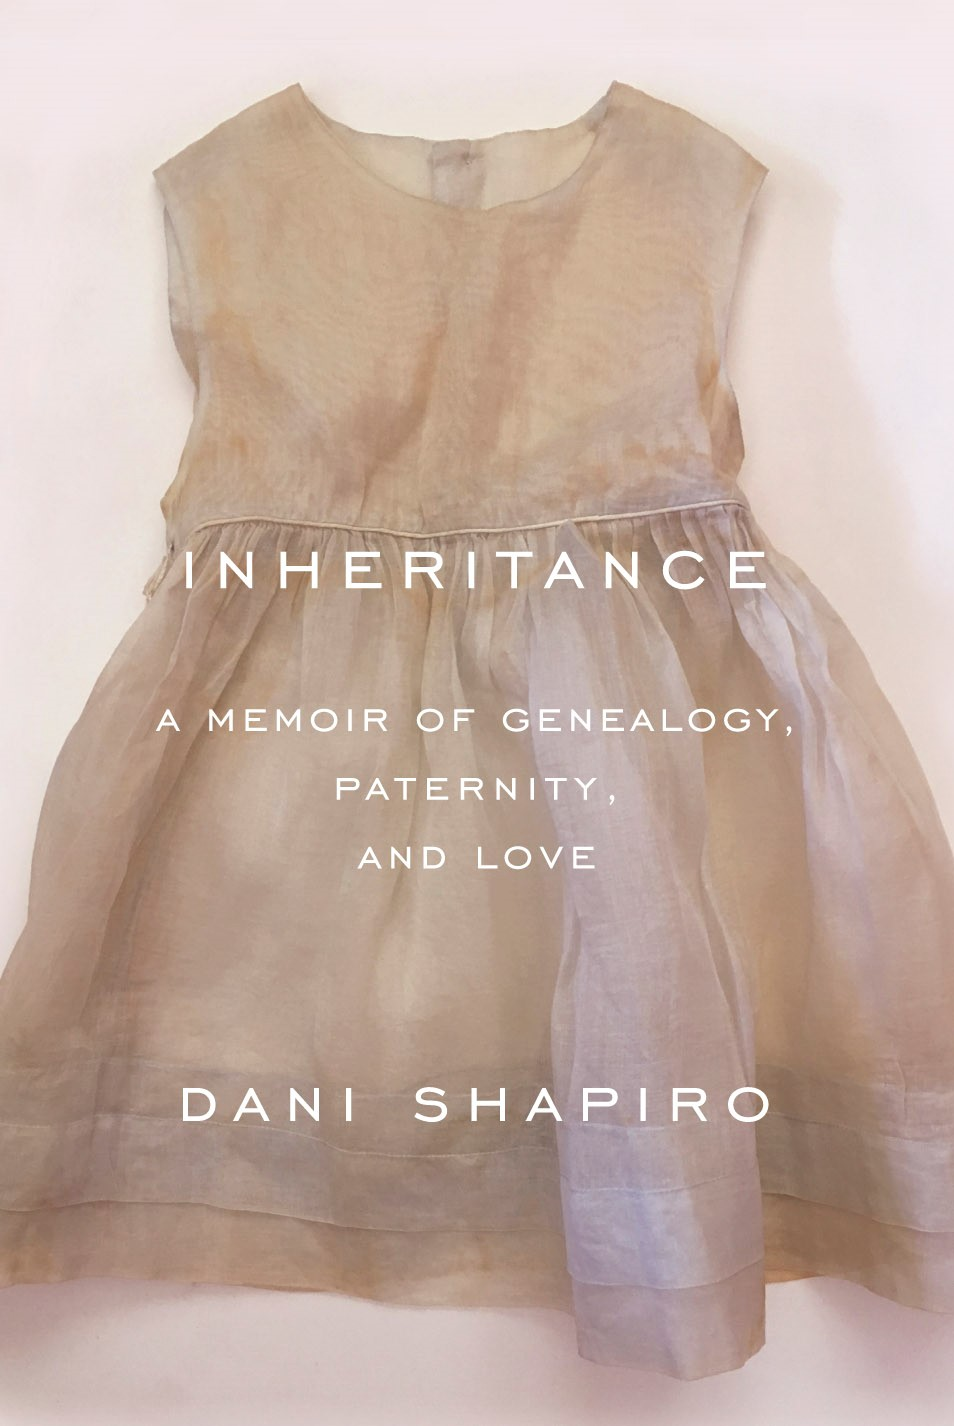 Inheritance  by Dani Shapiro  Knopf —- January 15, 2019